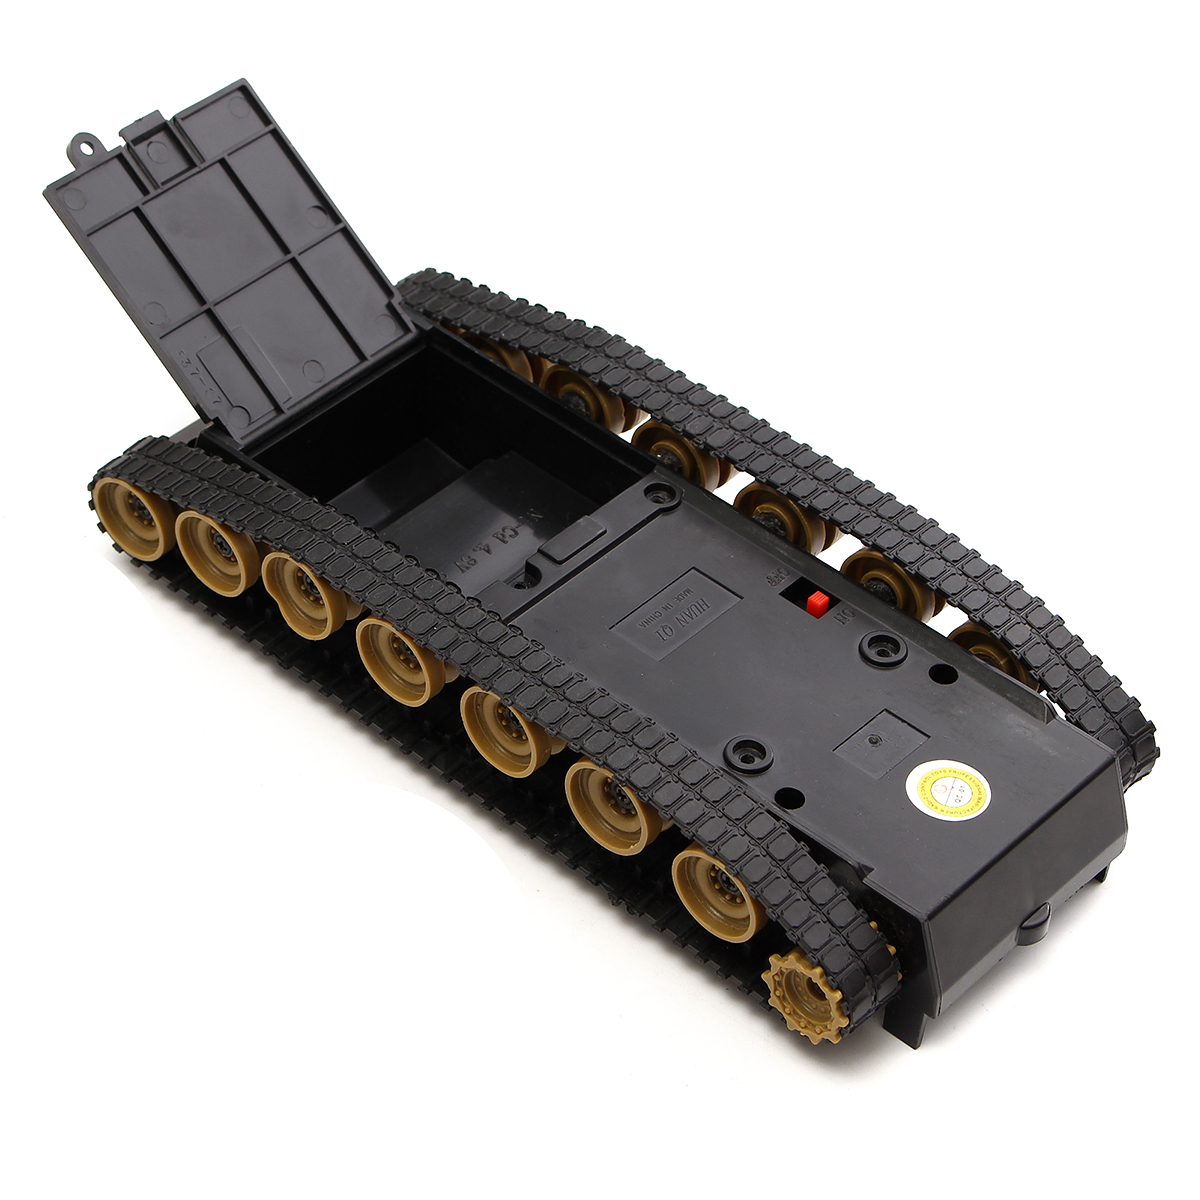 Smart Robot Tank Chassis Tracking Car DIY Kit for Arduino SCM